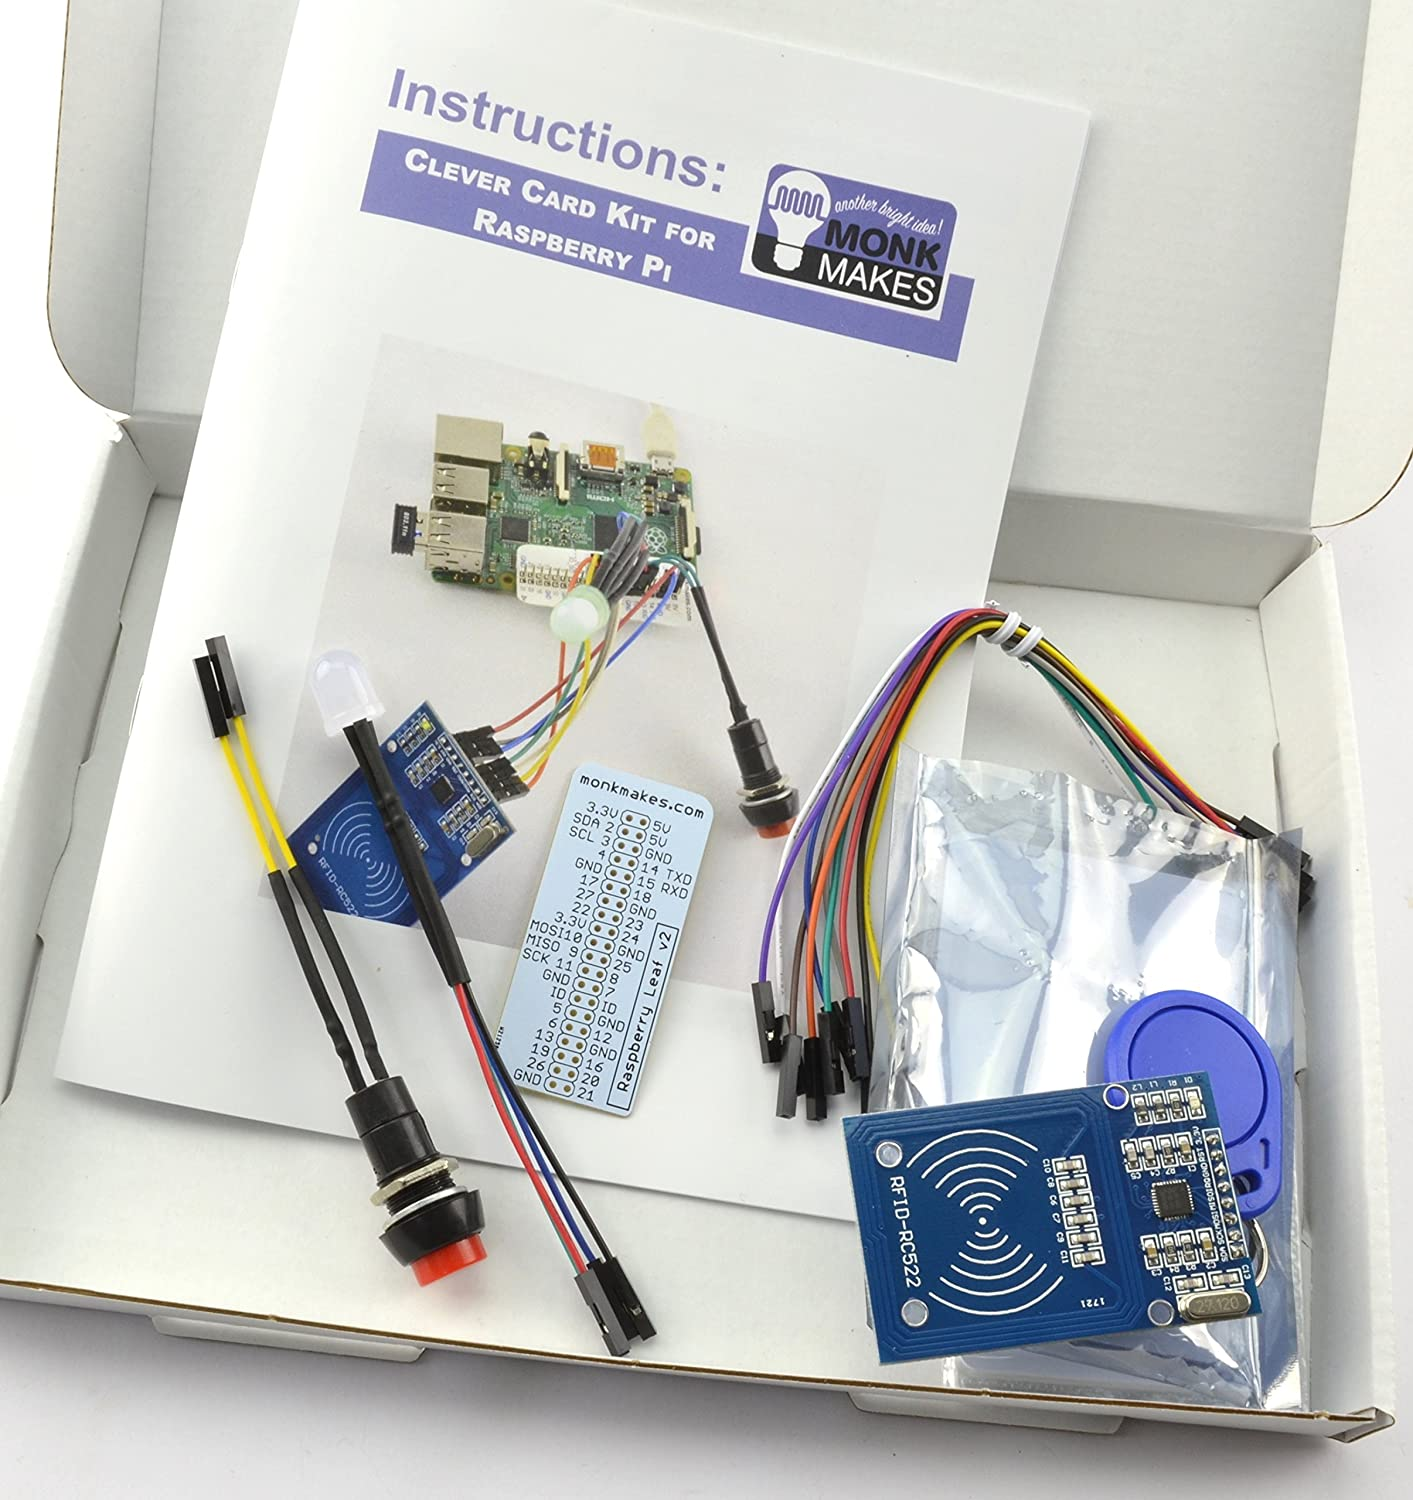 Clever Card Kit for Raspberry Pi